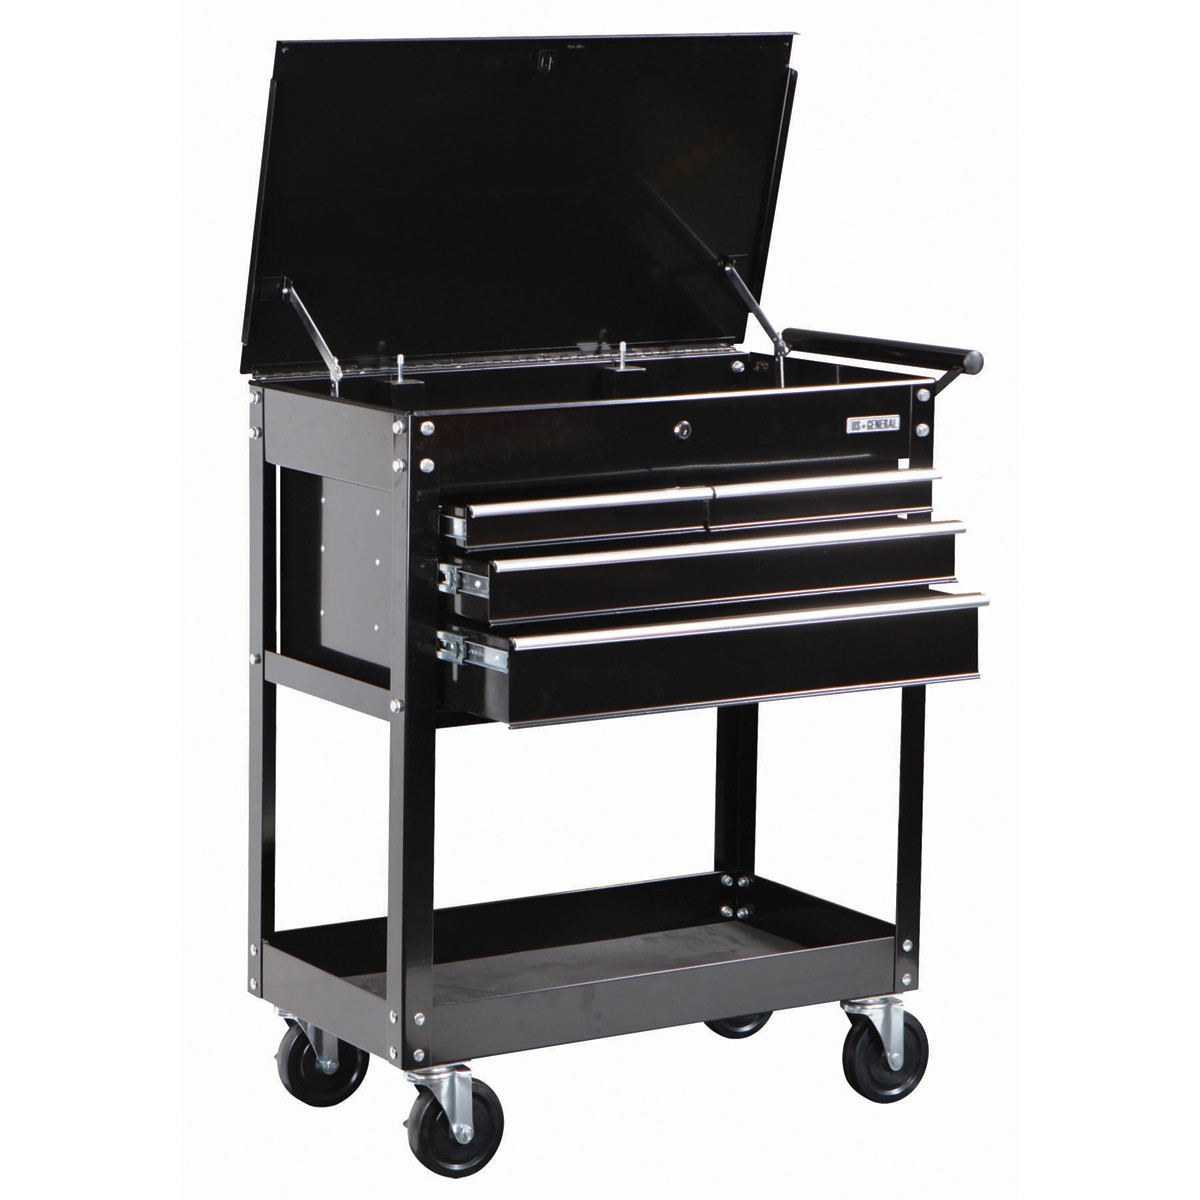 Harbor Freight Utility Cart >> Stuff We Like: Harbor Freight Tool Cart